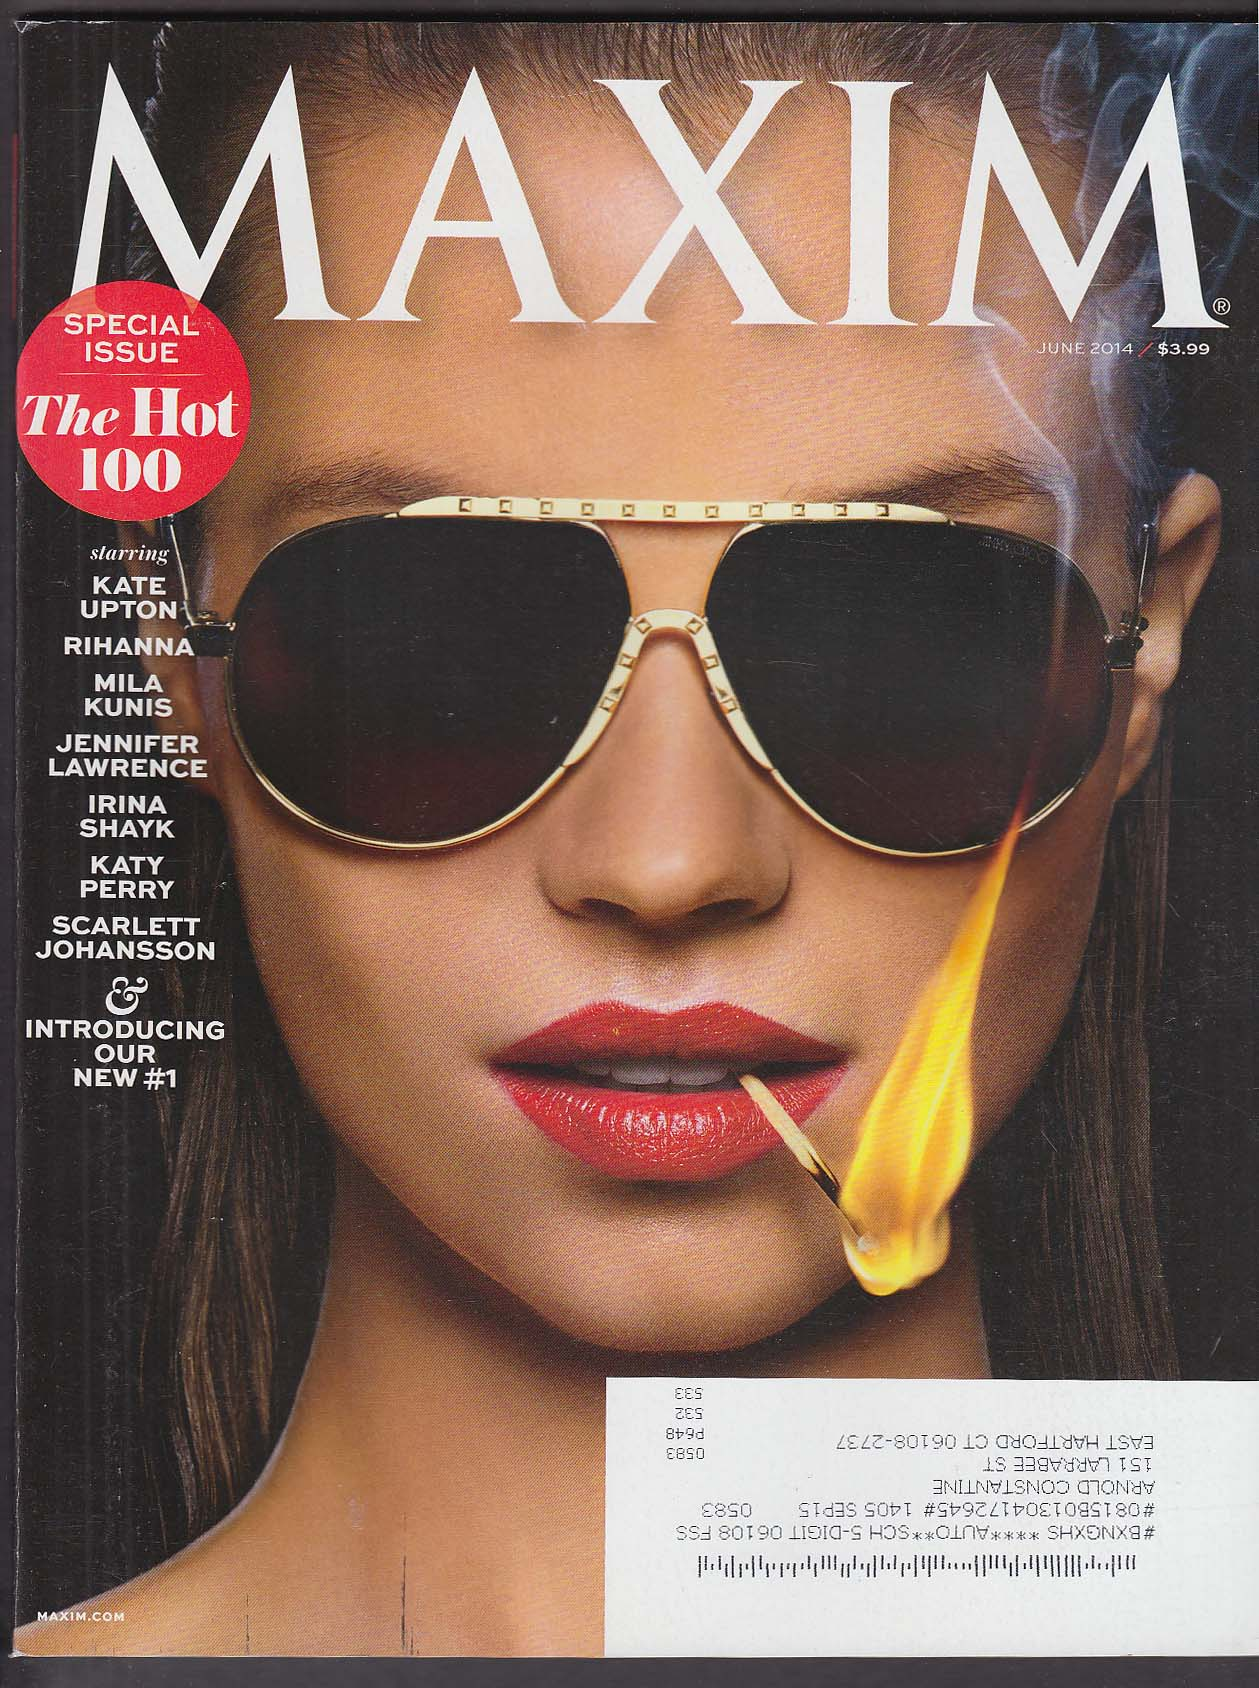 MAXIM Hot 100 Special Issue: Kate Upton Rihanna Mila Kunis, et al. 6 2014